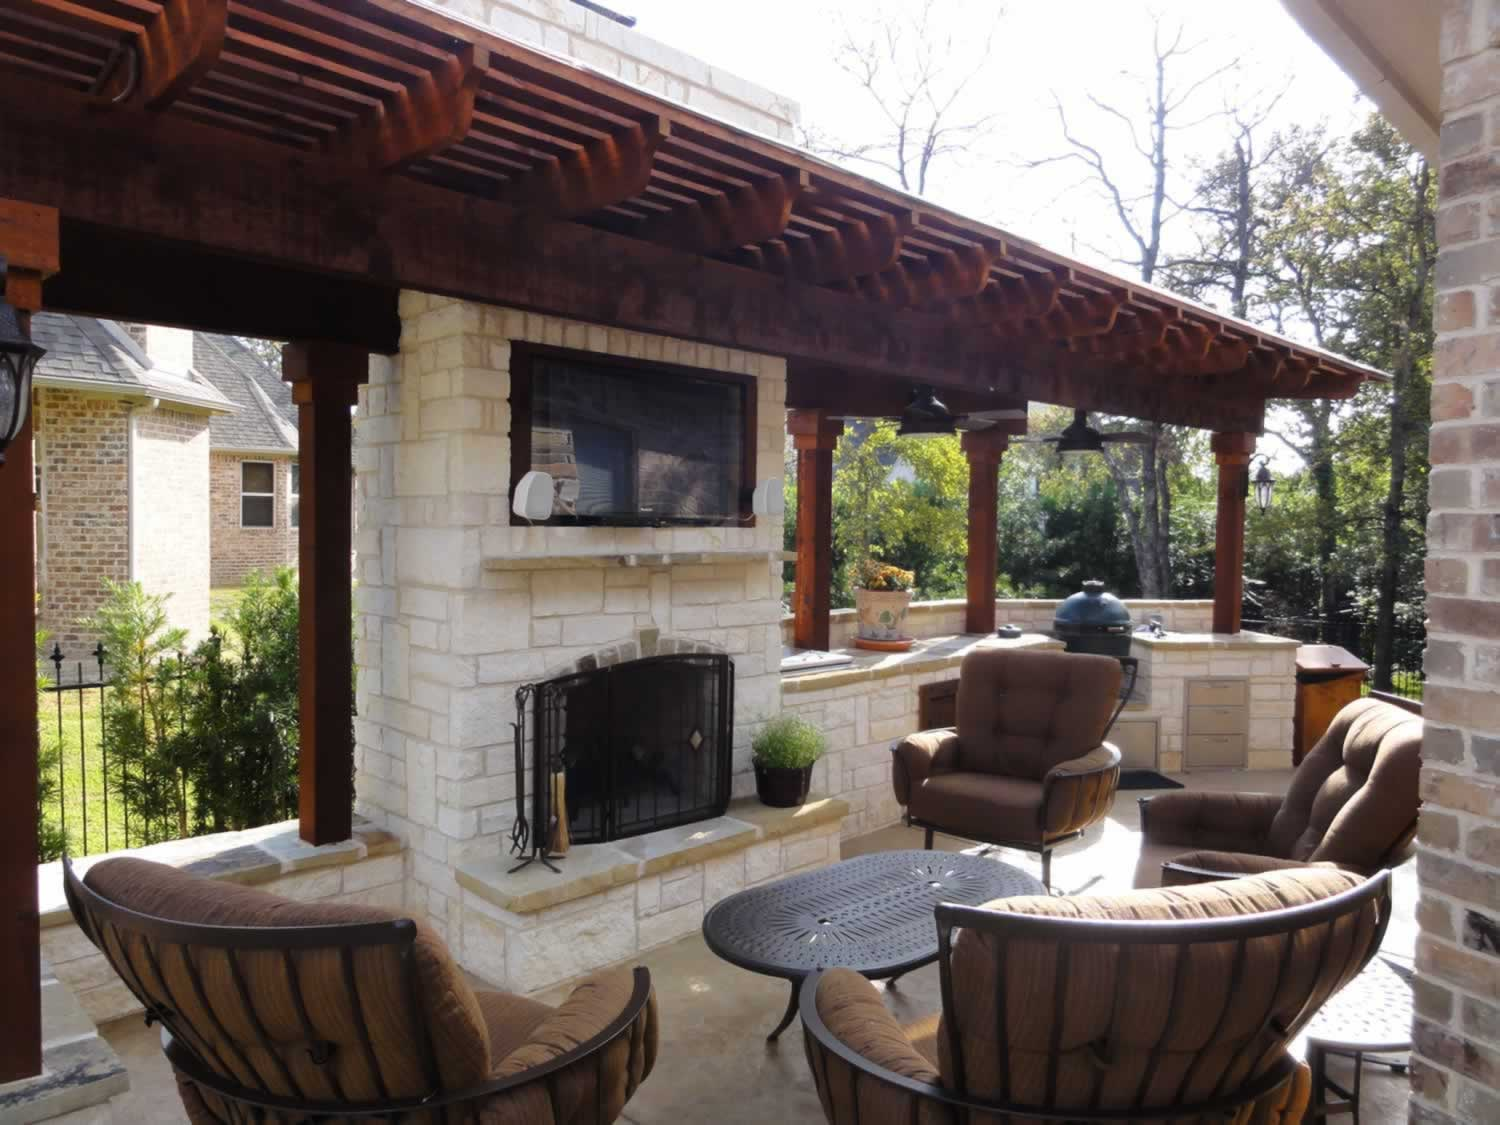 Landscape Design in Aledo TX | Landscape By Design